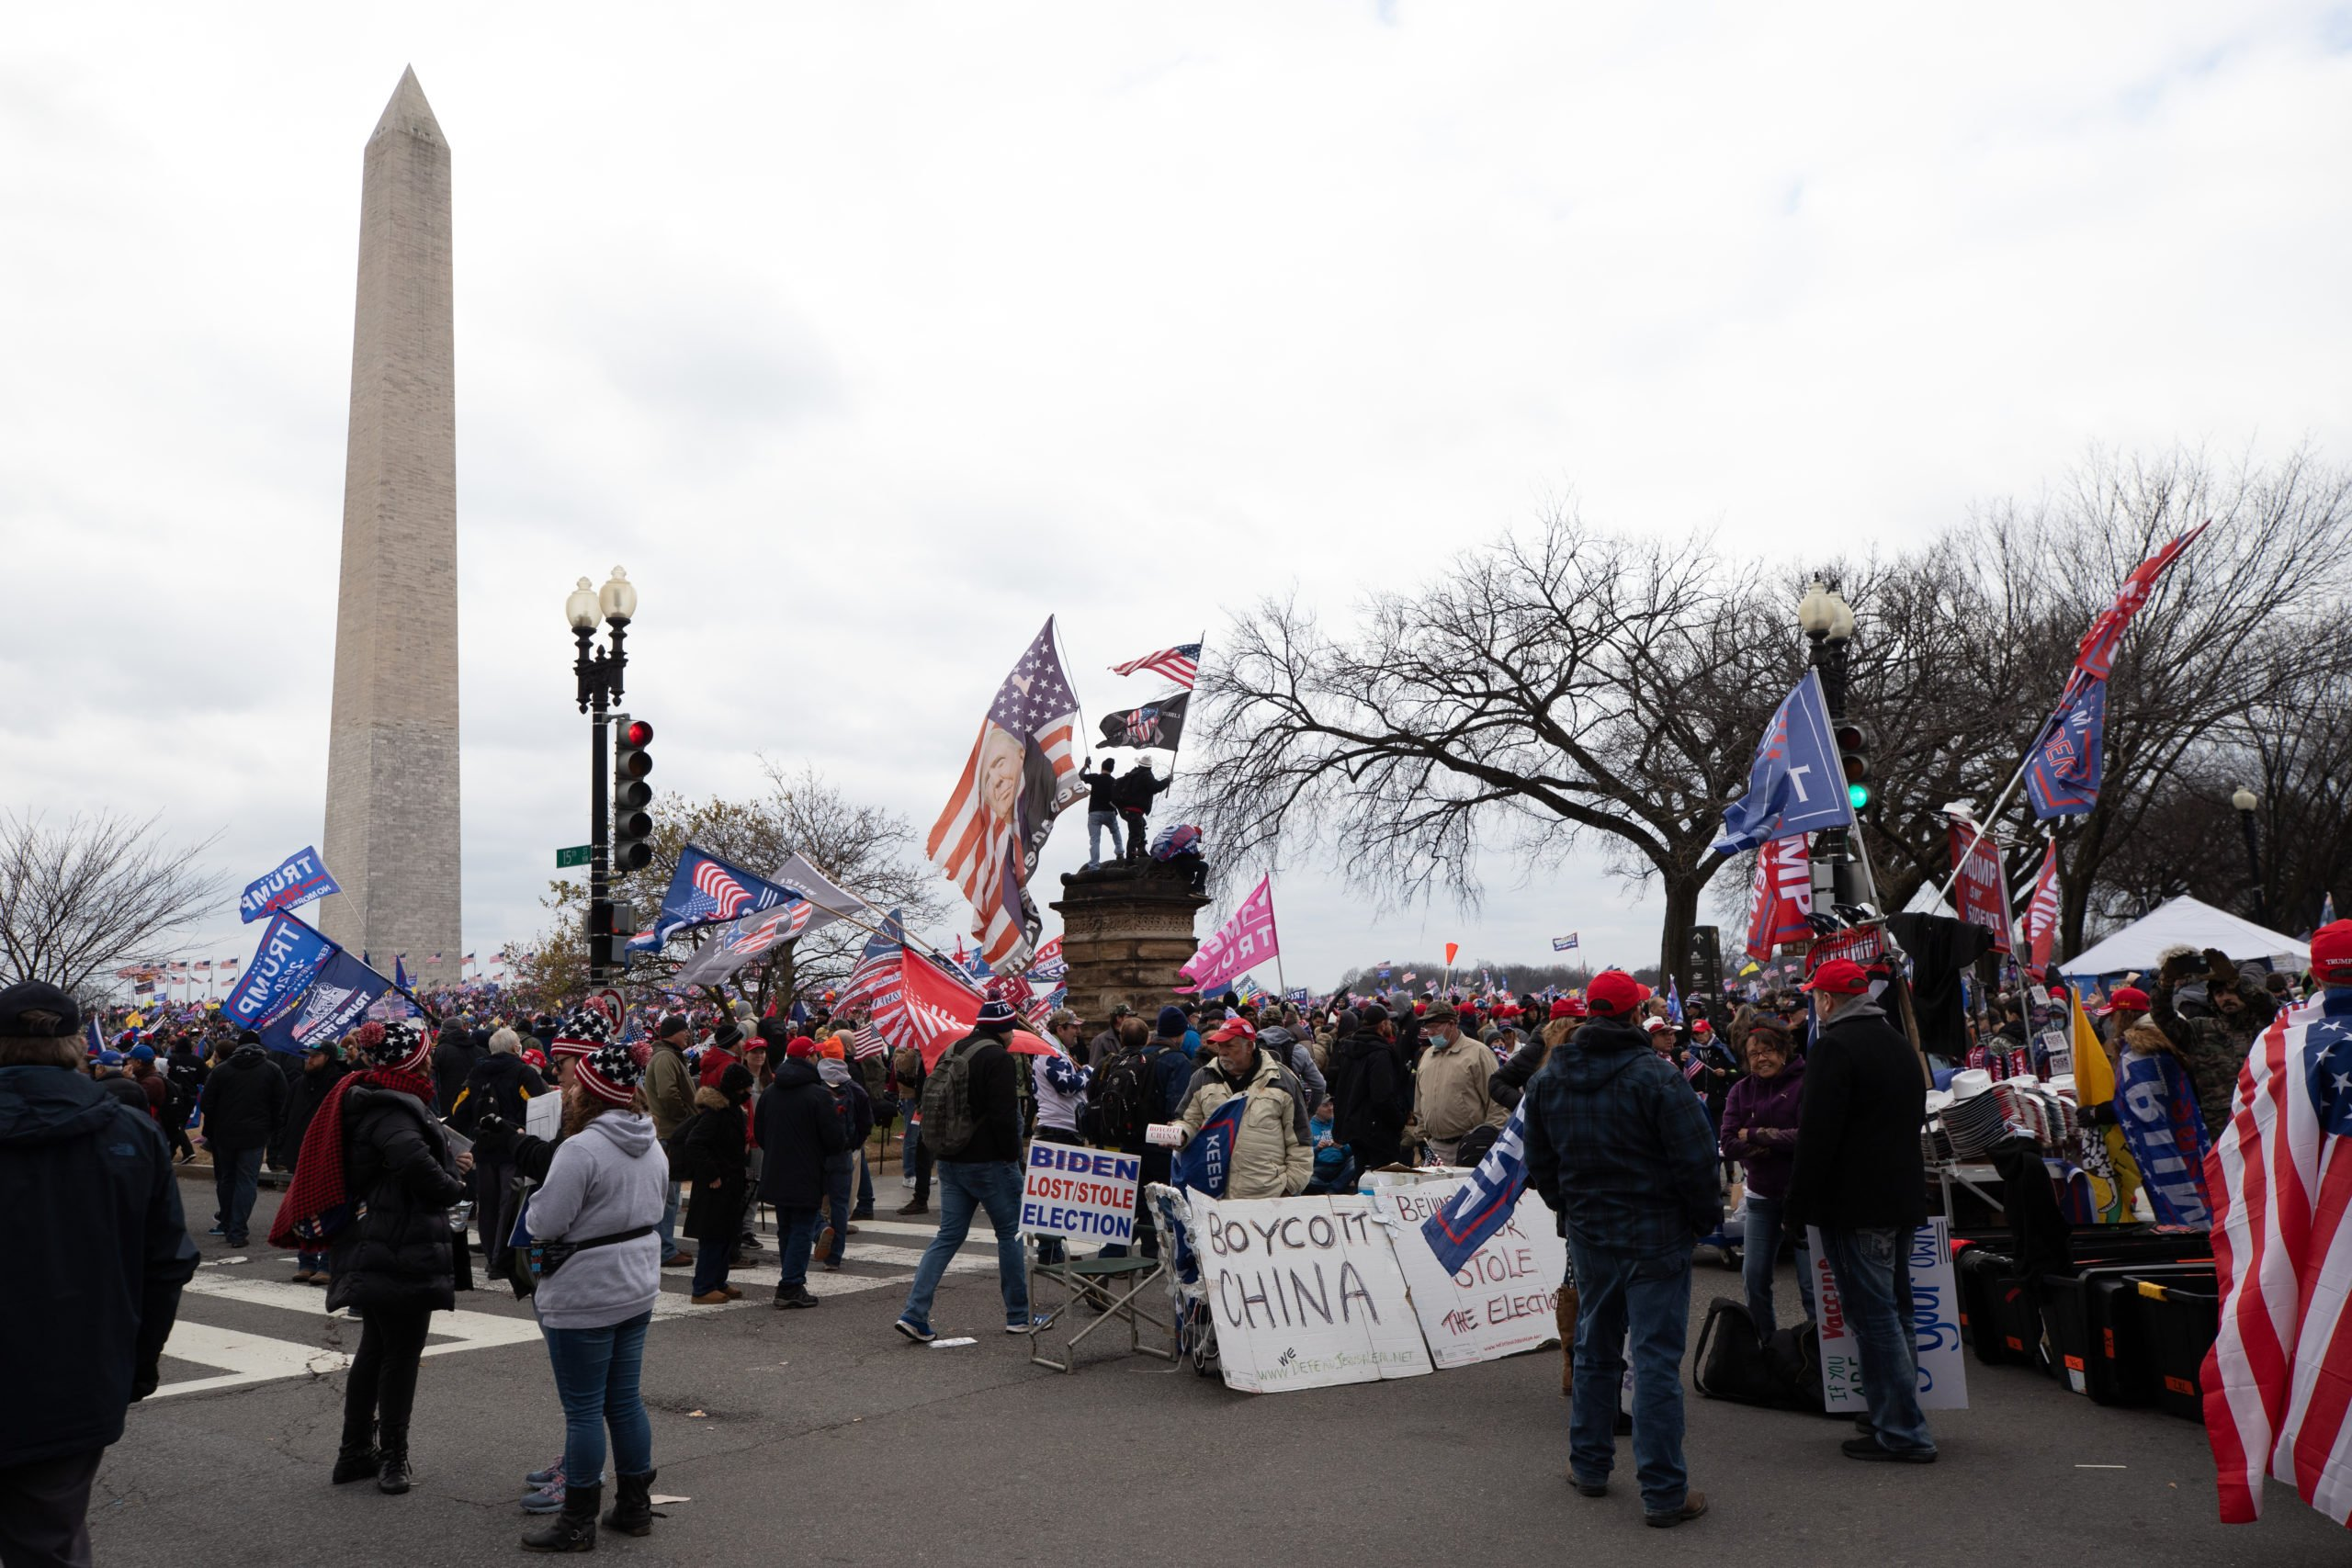 People overflowed from The Ellipse into the National Mall and up to the Washington Monument while waiting to hear President Donald Trump Speak in Washington, D.C. on Jan. 6, 2021. (Kaylee Greenlee - Daily Caller News Foundation)